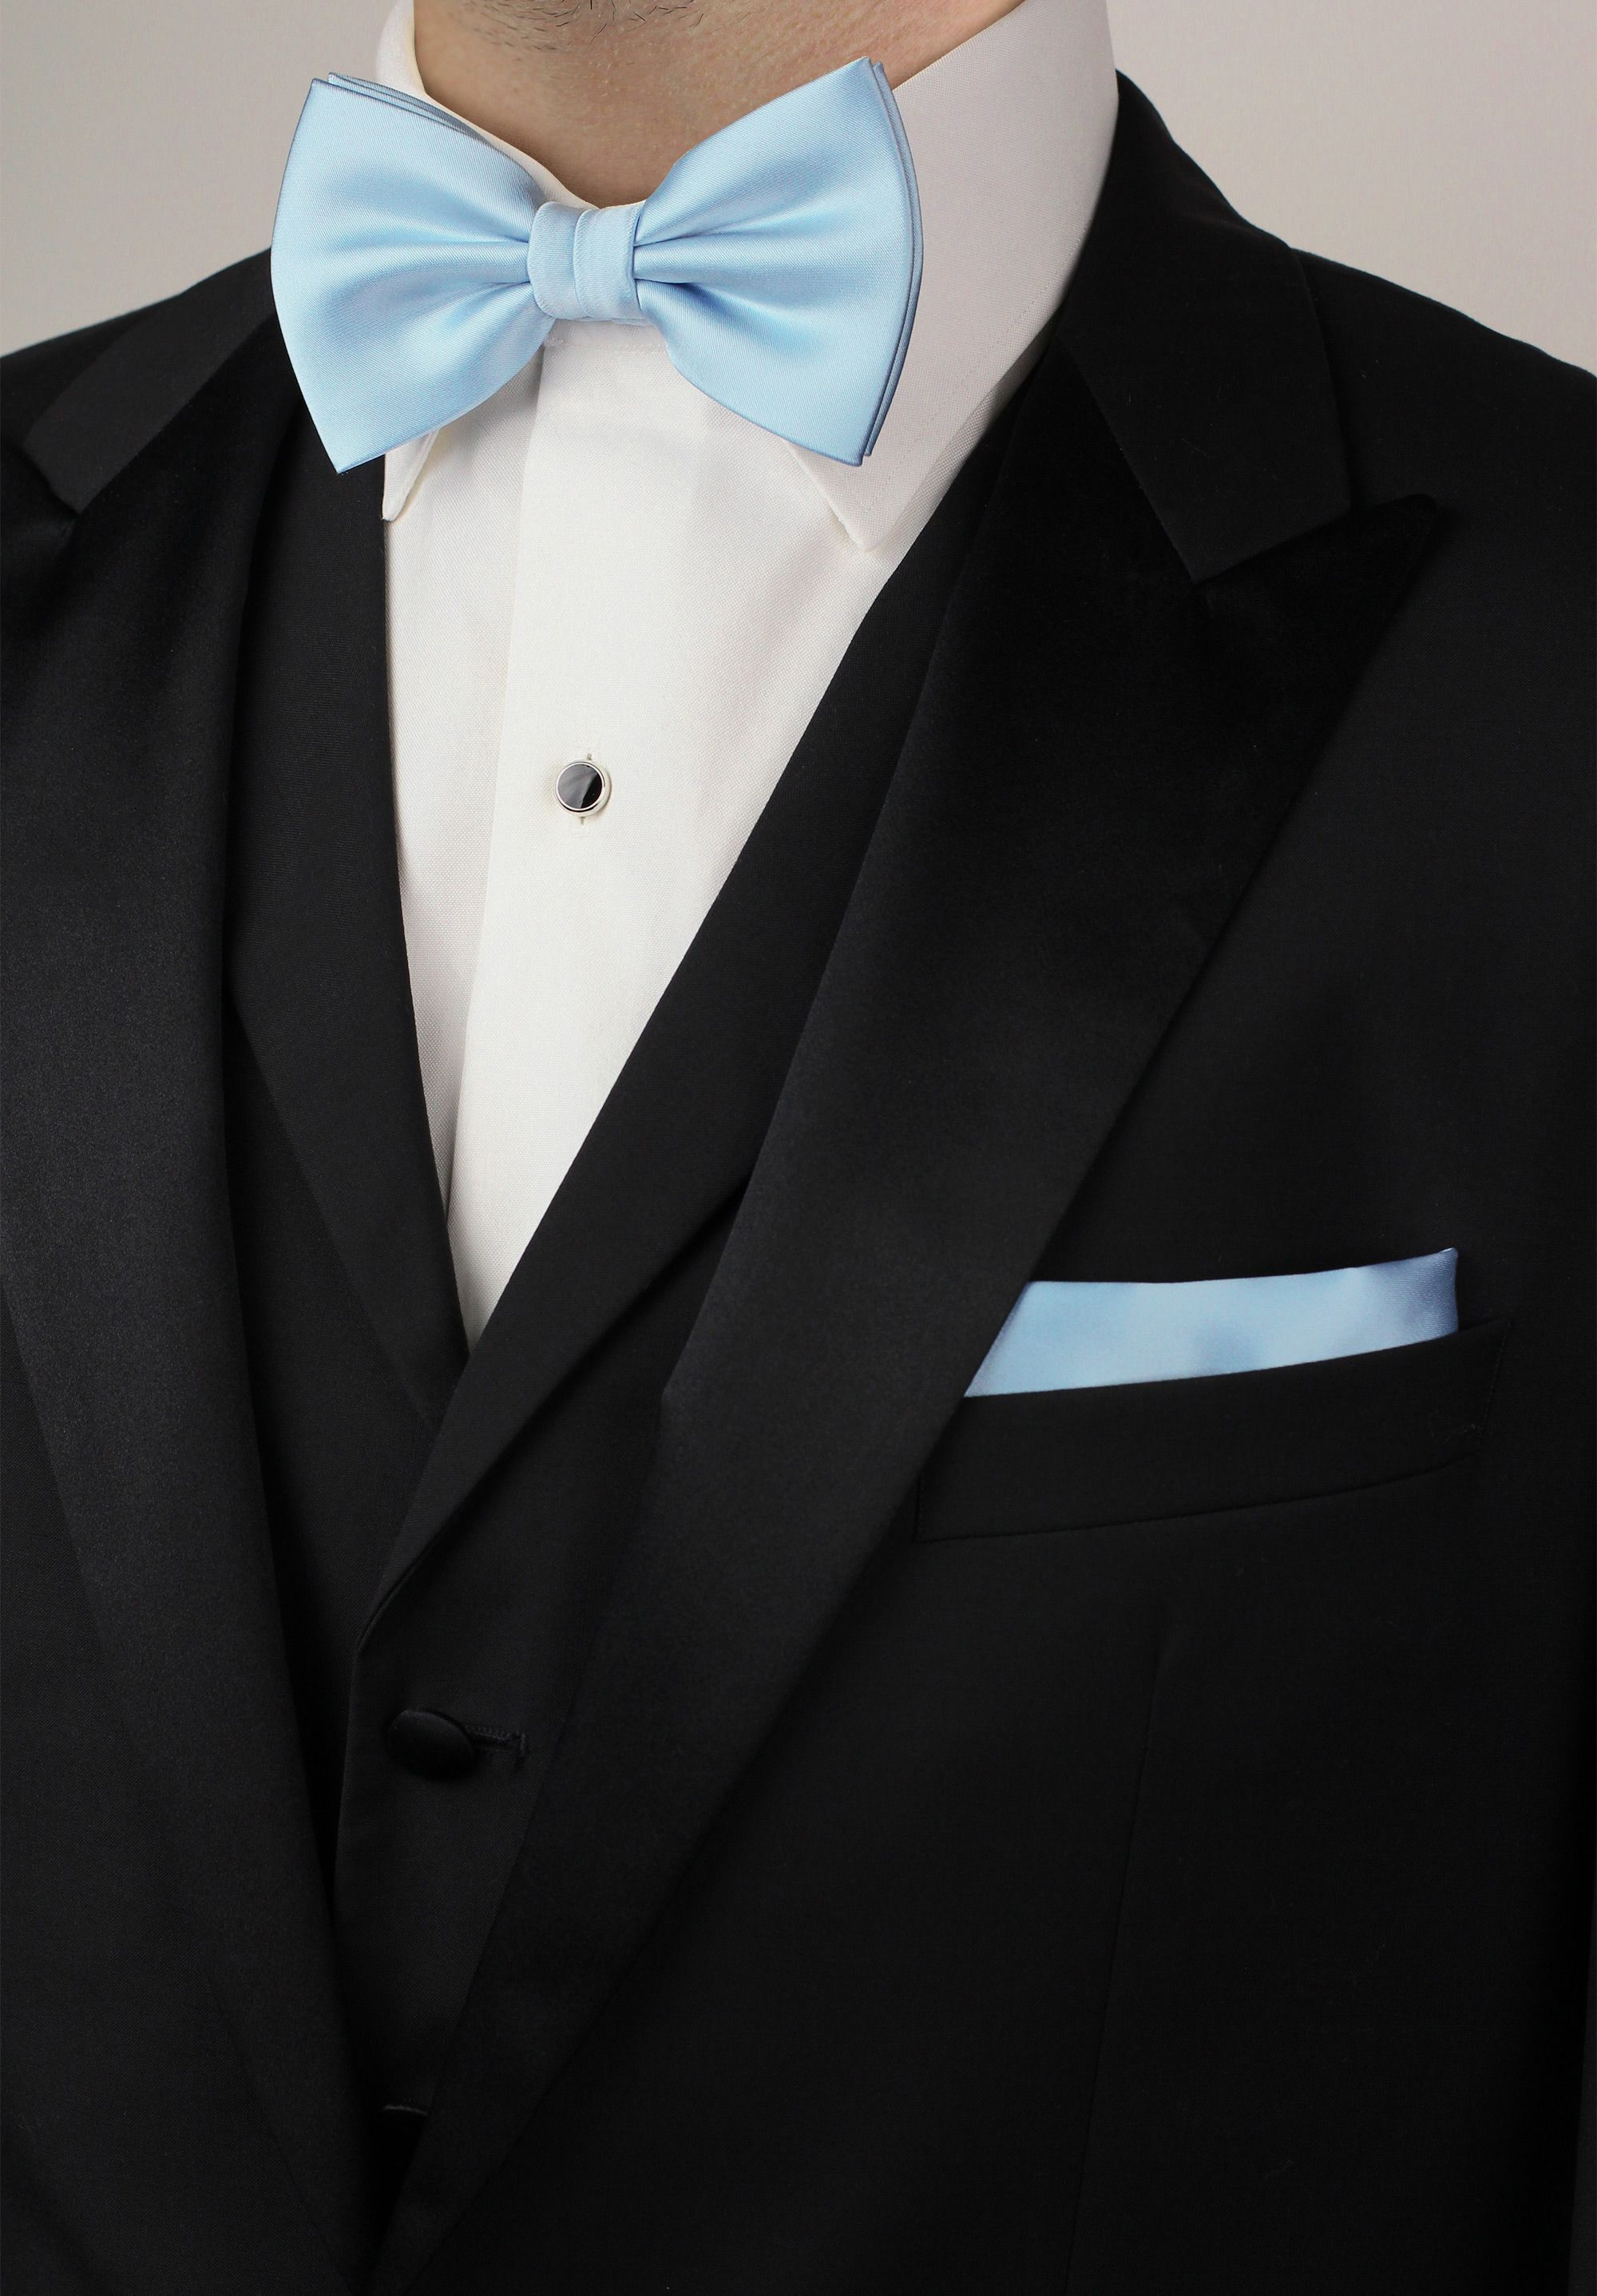 ed2a0dc0ffc2 Mens formal attire with light blue bow tie and pocket square set with black  tuxedo